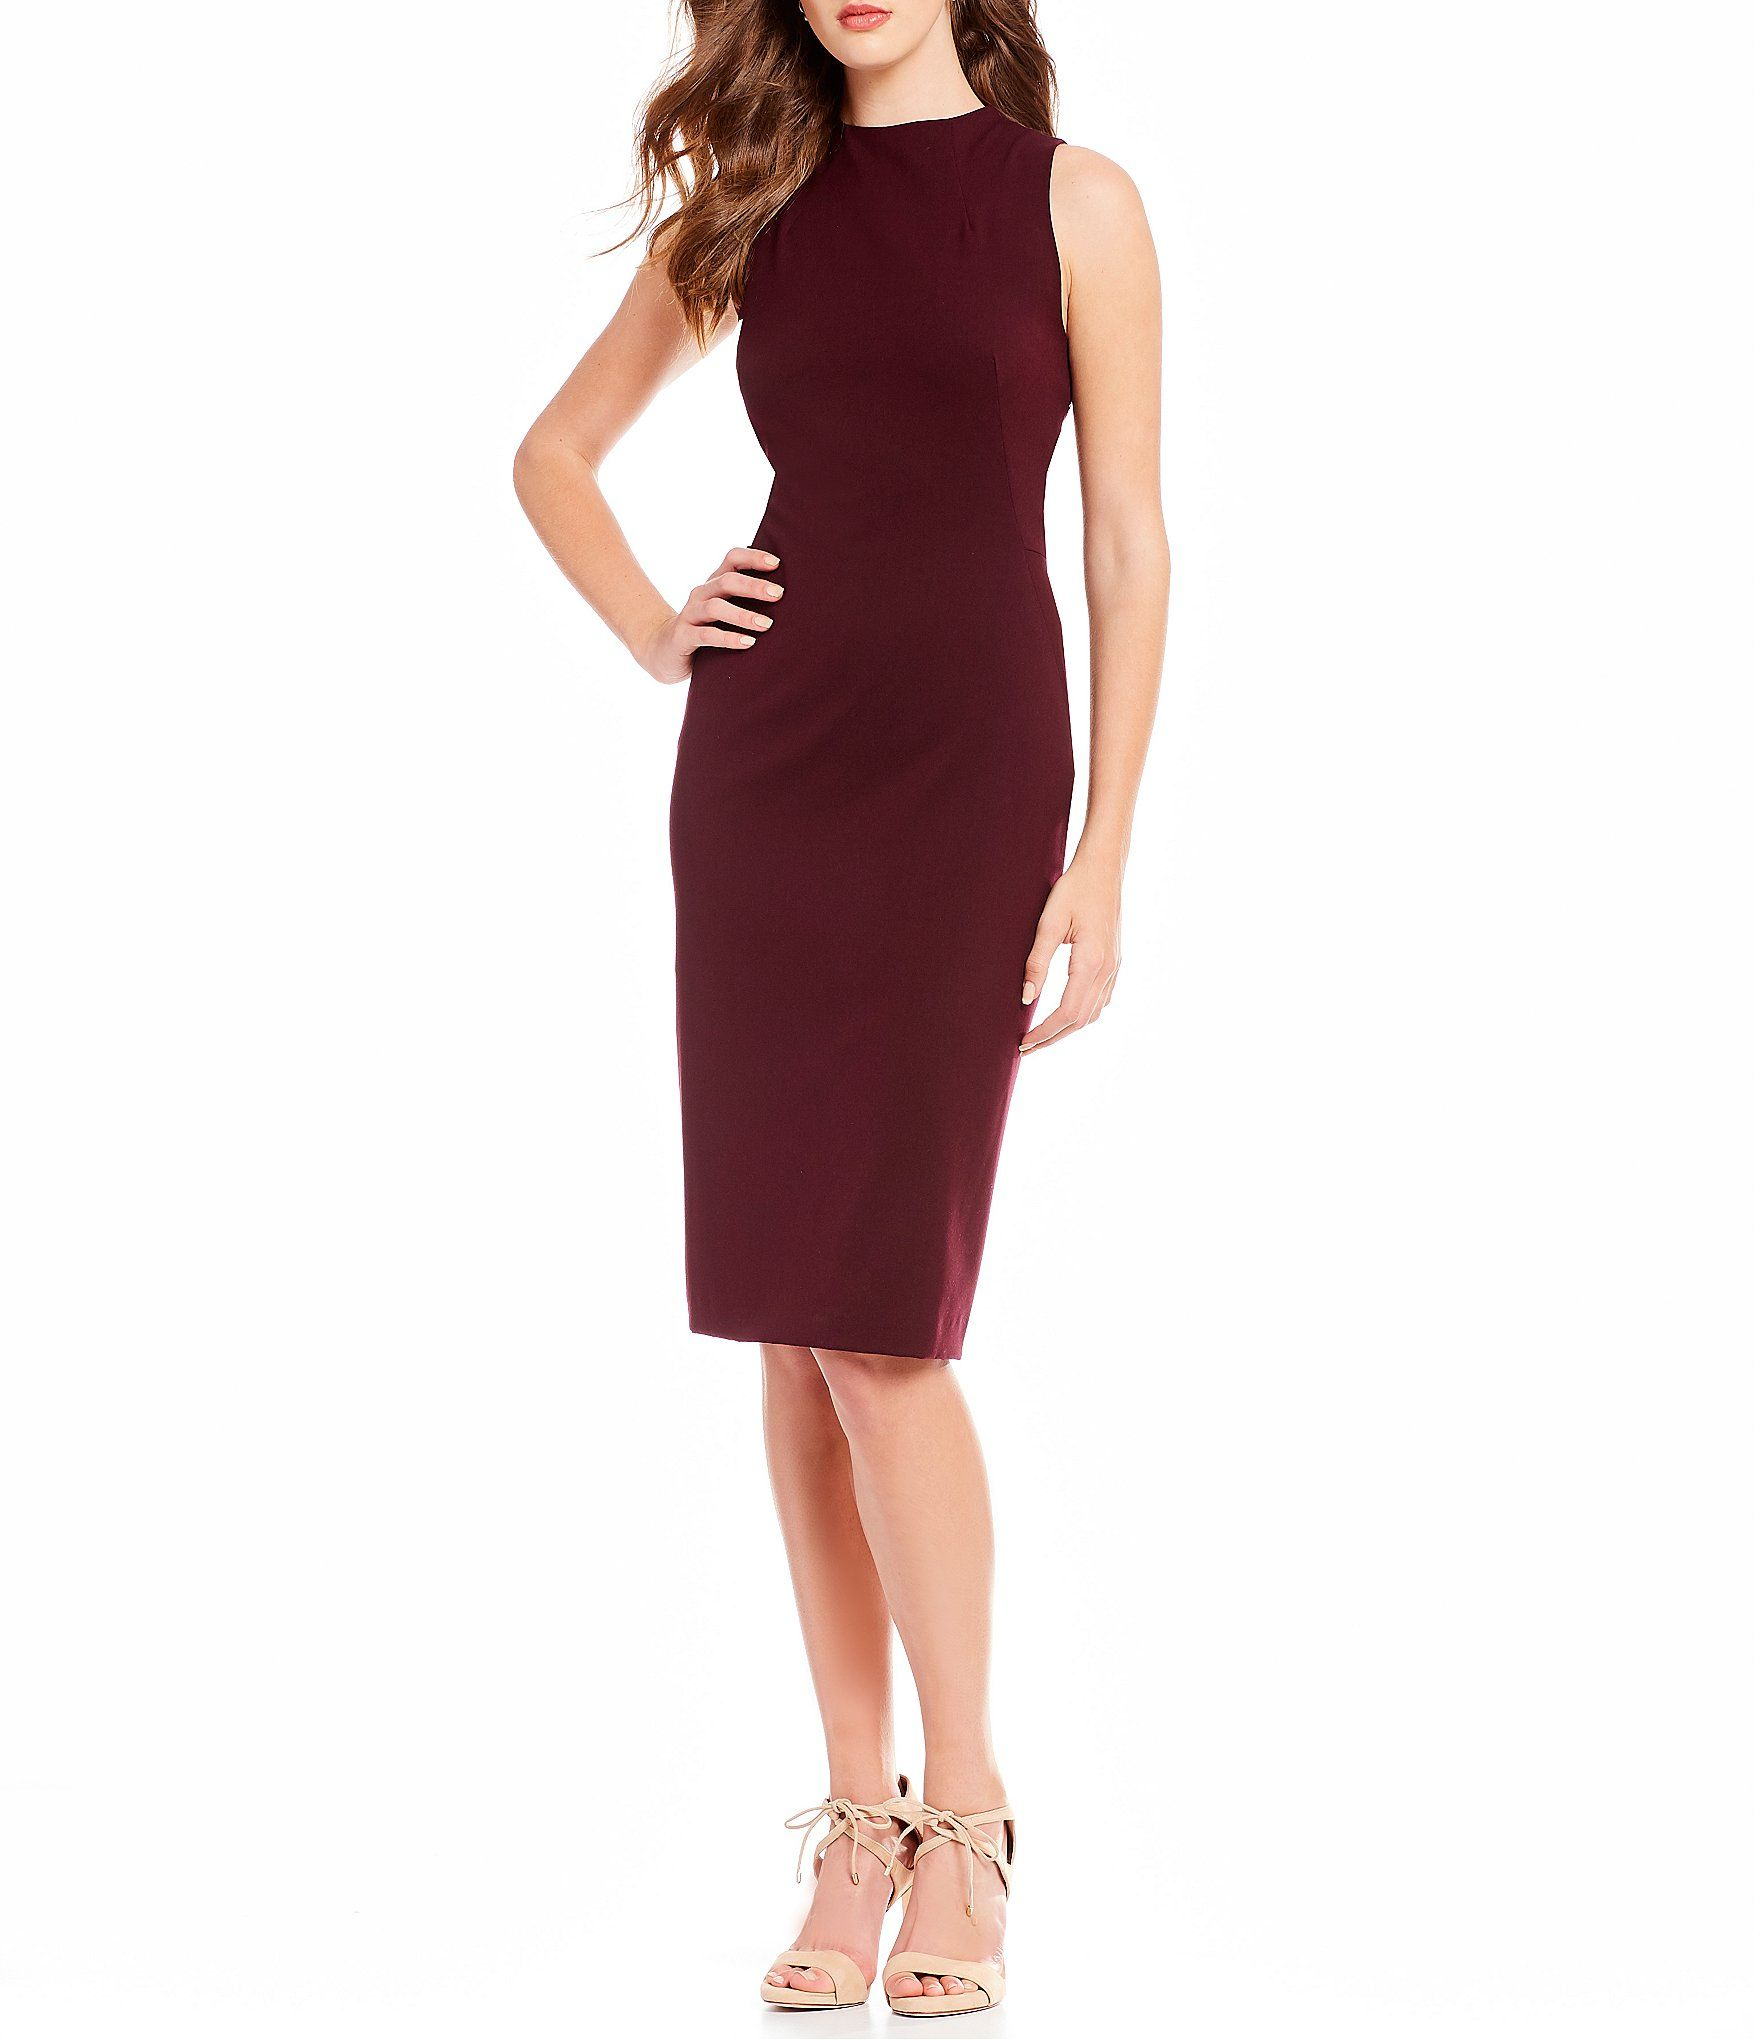 f5a9a643fcf Shop for Antonio Melani Lea Sheath Dress at Dillards.com. Visit  Dillards.com to find clothing